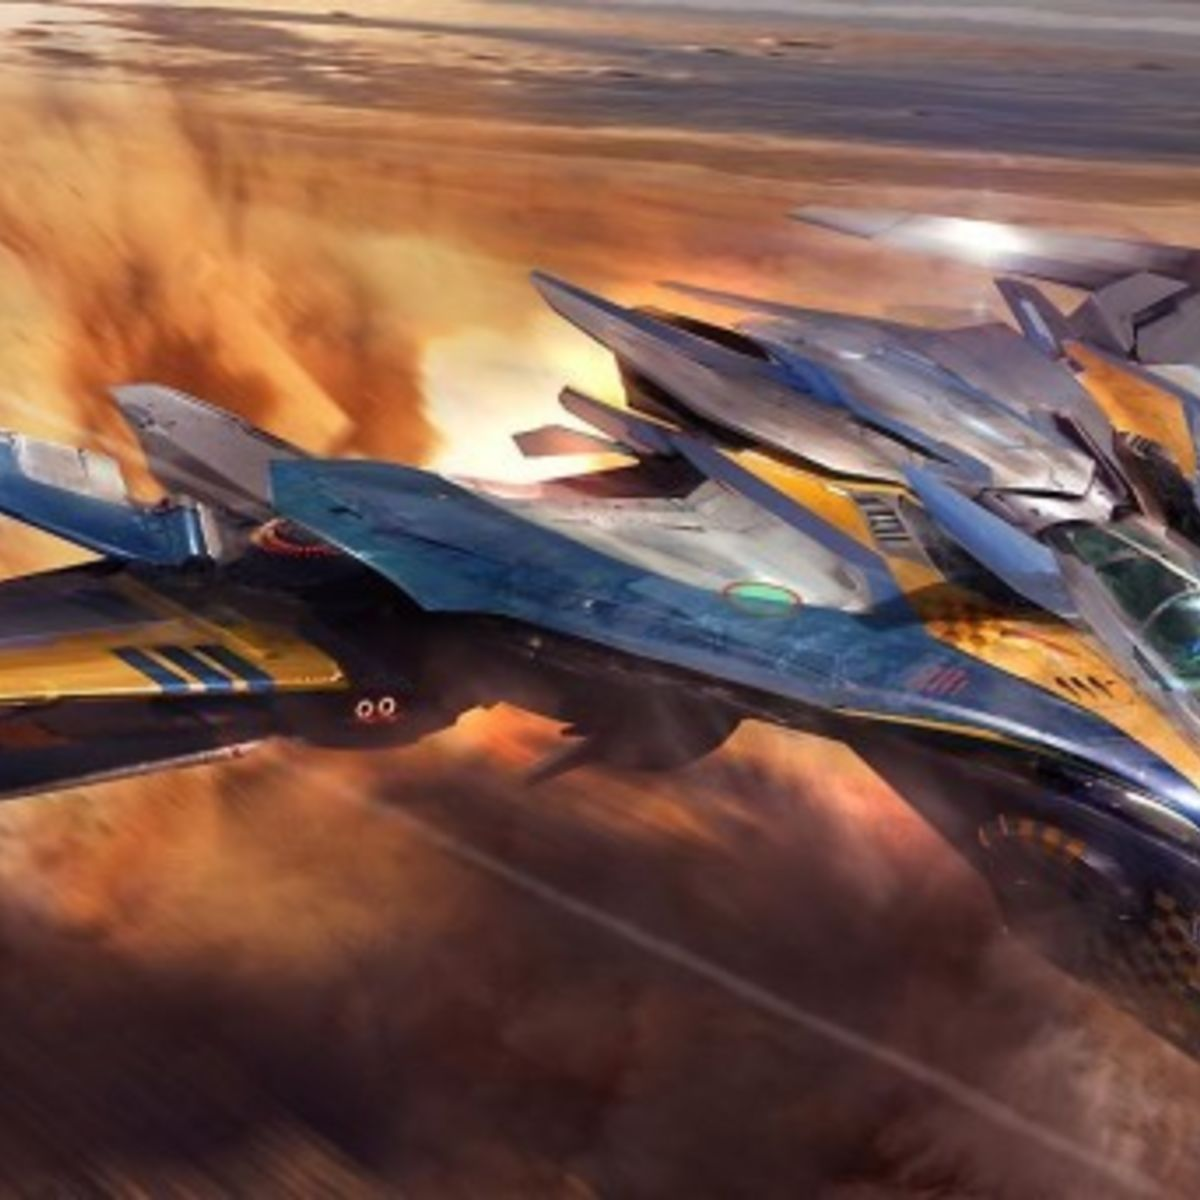 Guardians_of_the_Galaxy_Concept_Art_Atomhawk_Milano_Flight-680x342.jpg